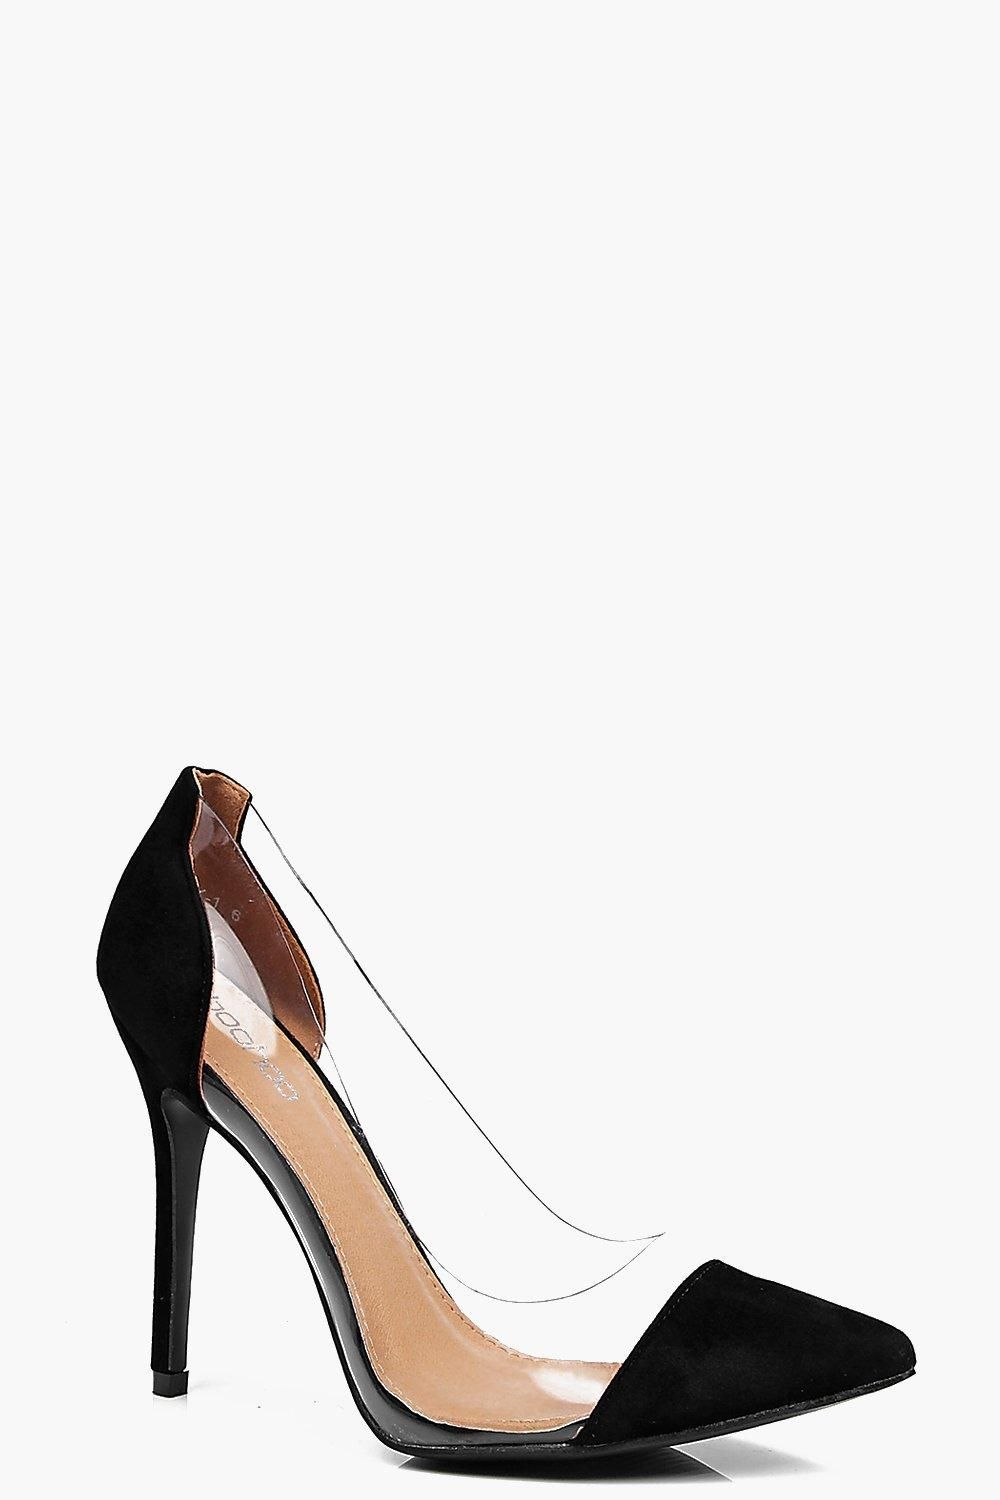 Lacey Clear Pointed Court Boohoo Uk Heels Boohoo High Heels